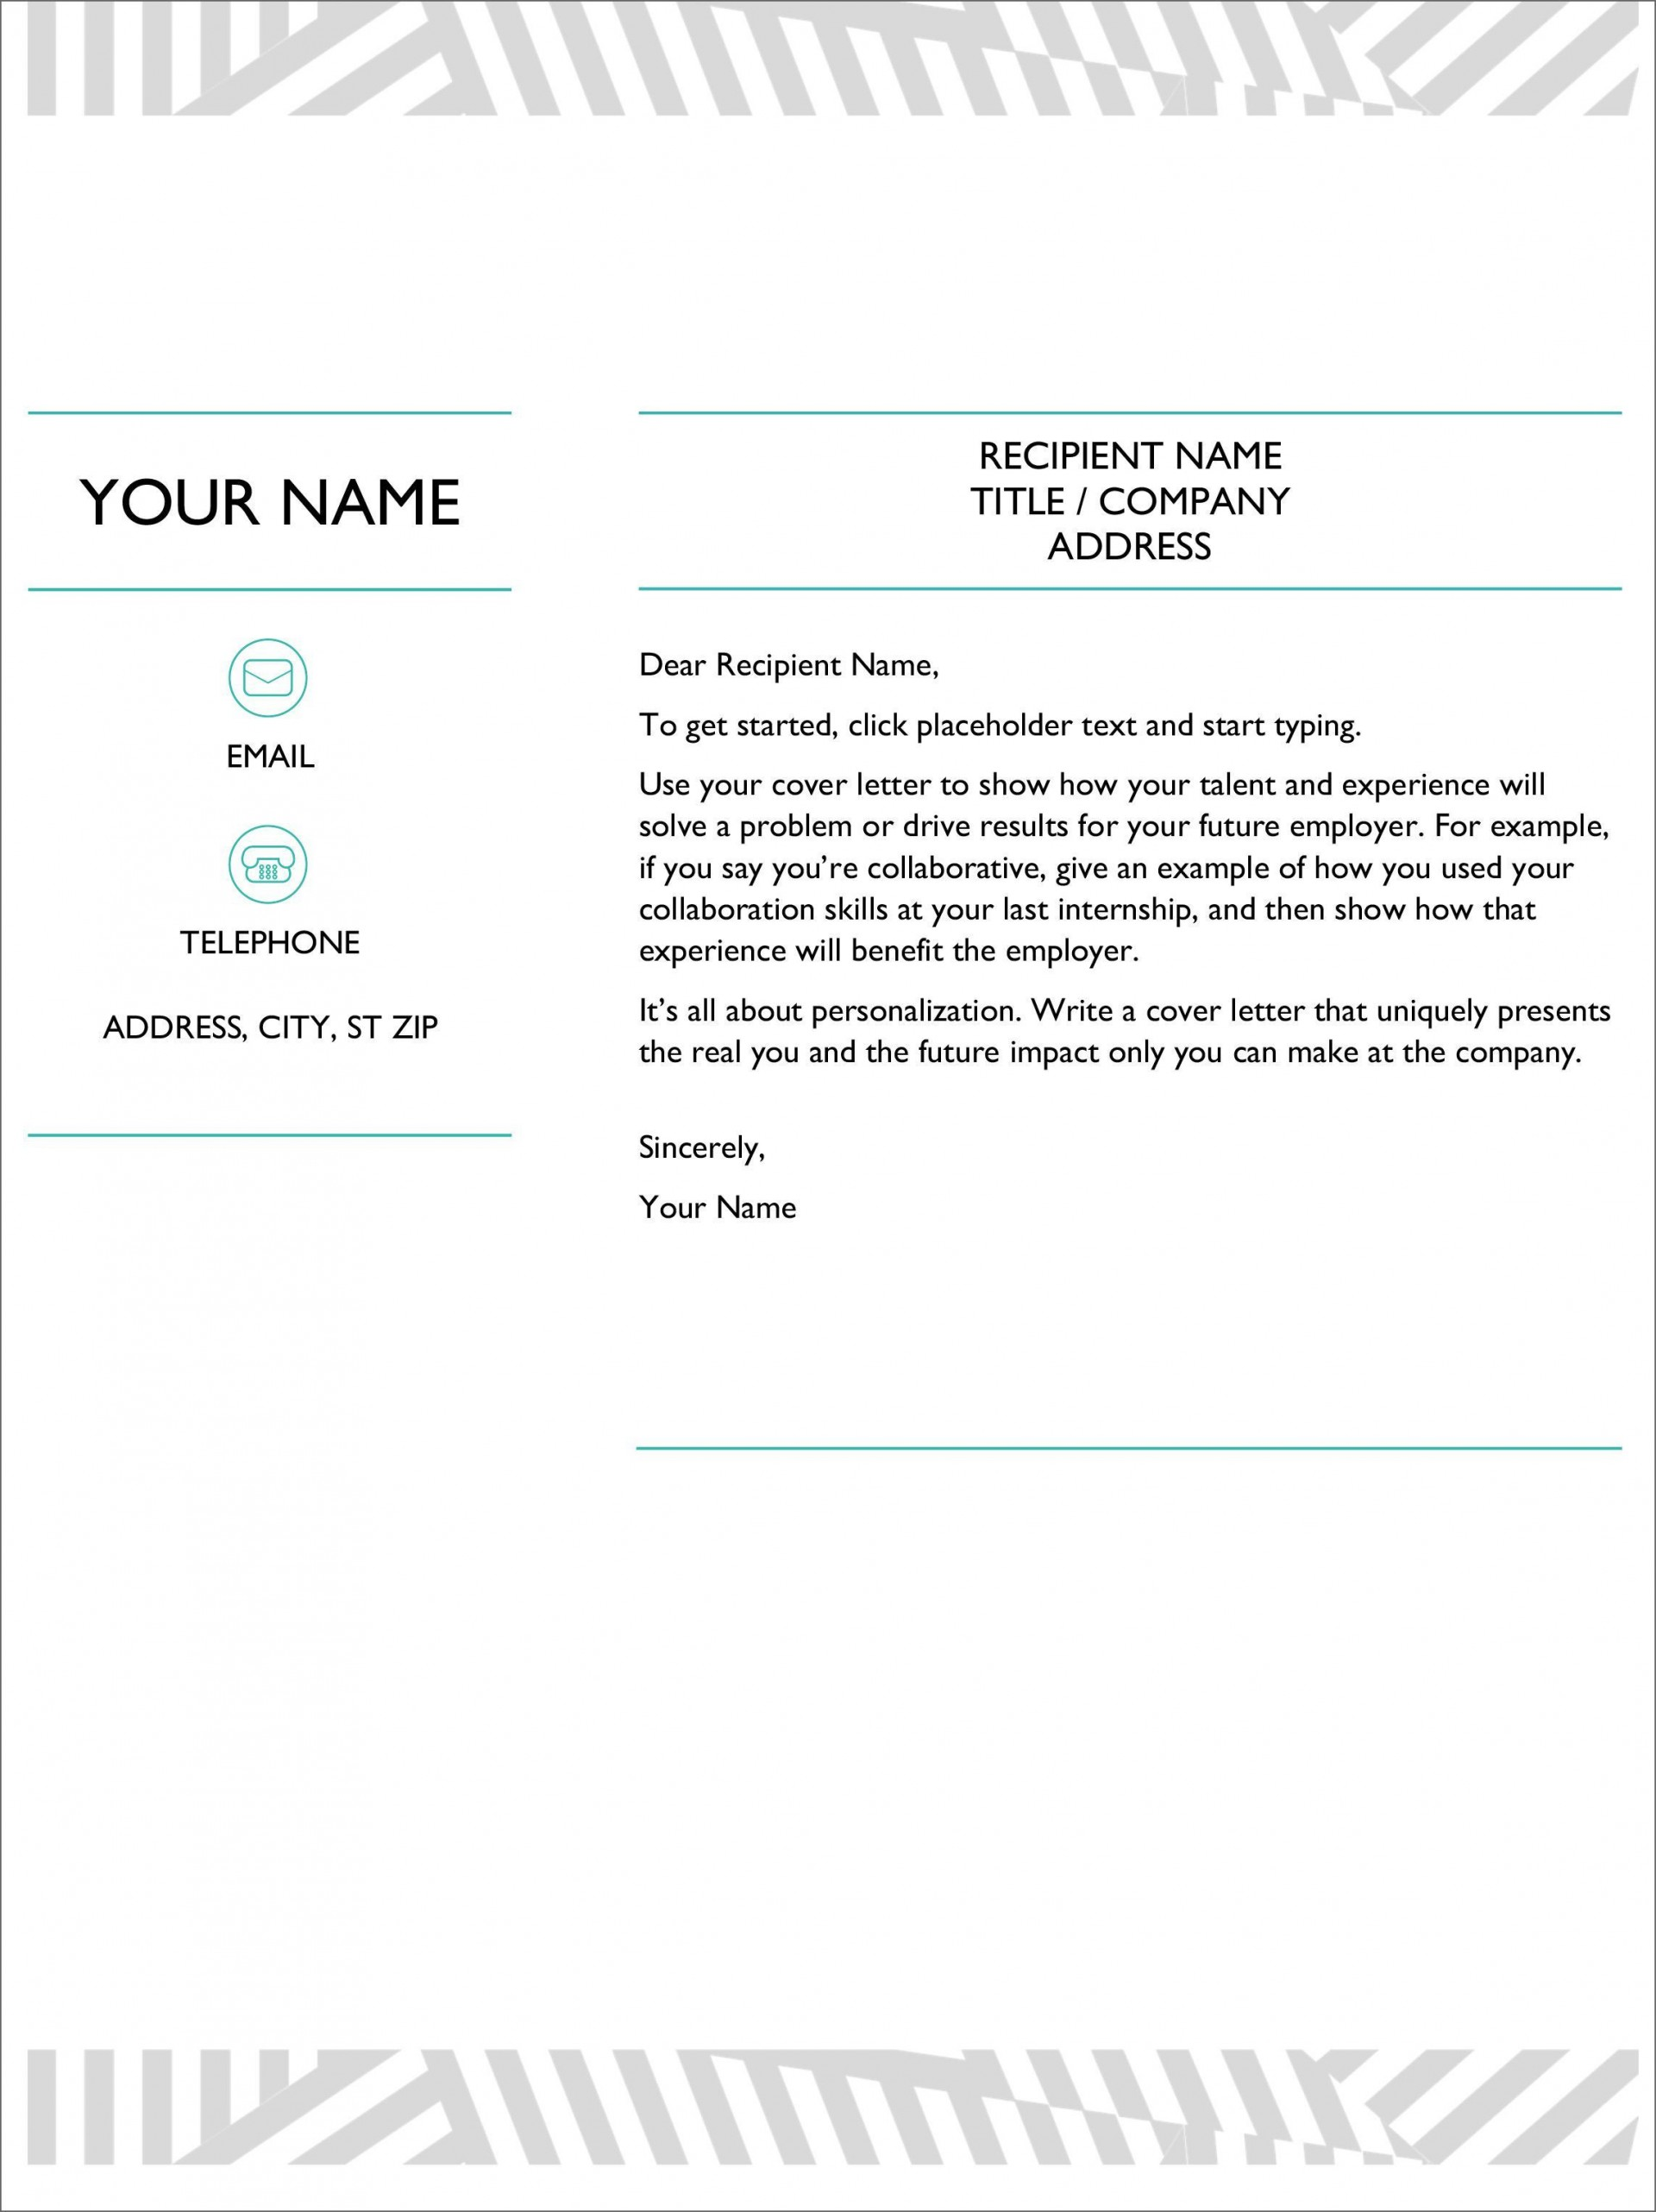 002 Astounding Microsoft Word Letter Template High Resolution  Free Download M Of Resignation1920